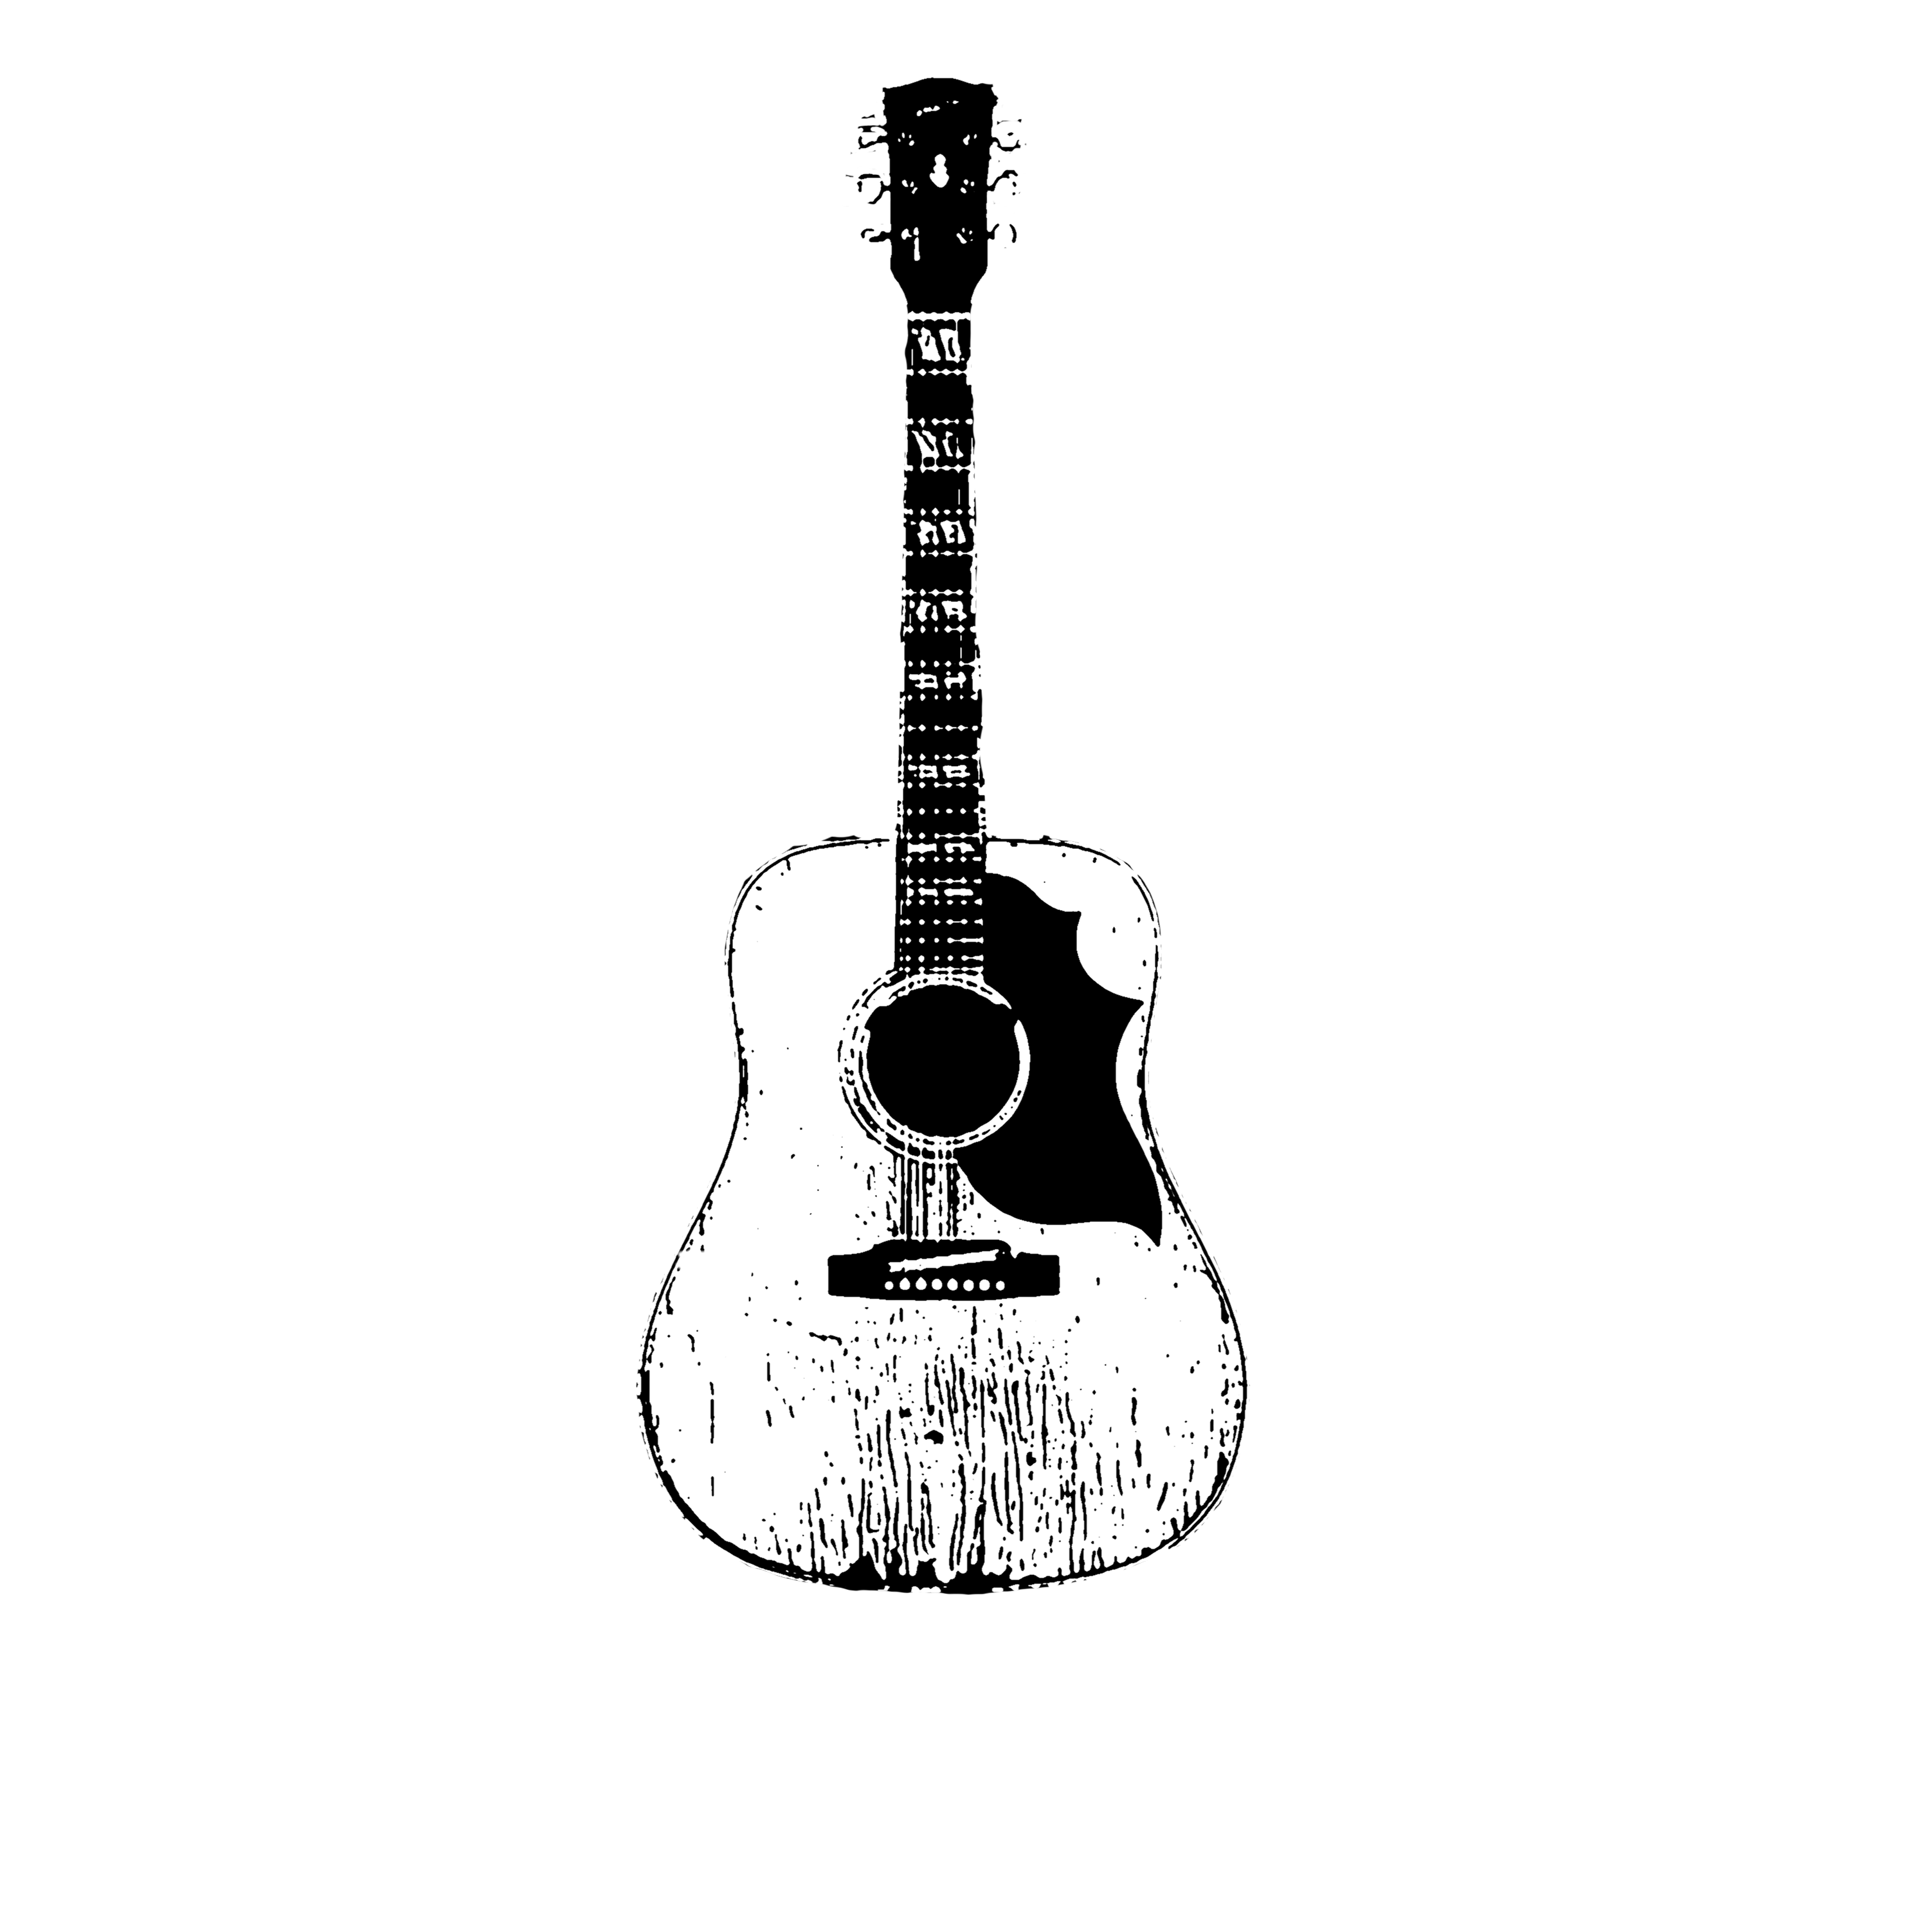 Jeff Lane & Hundred Acres